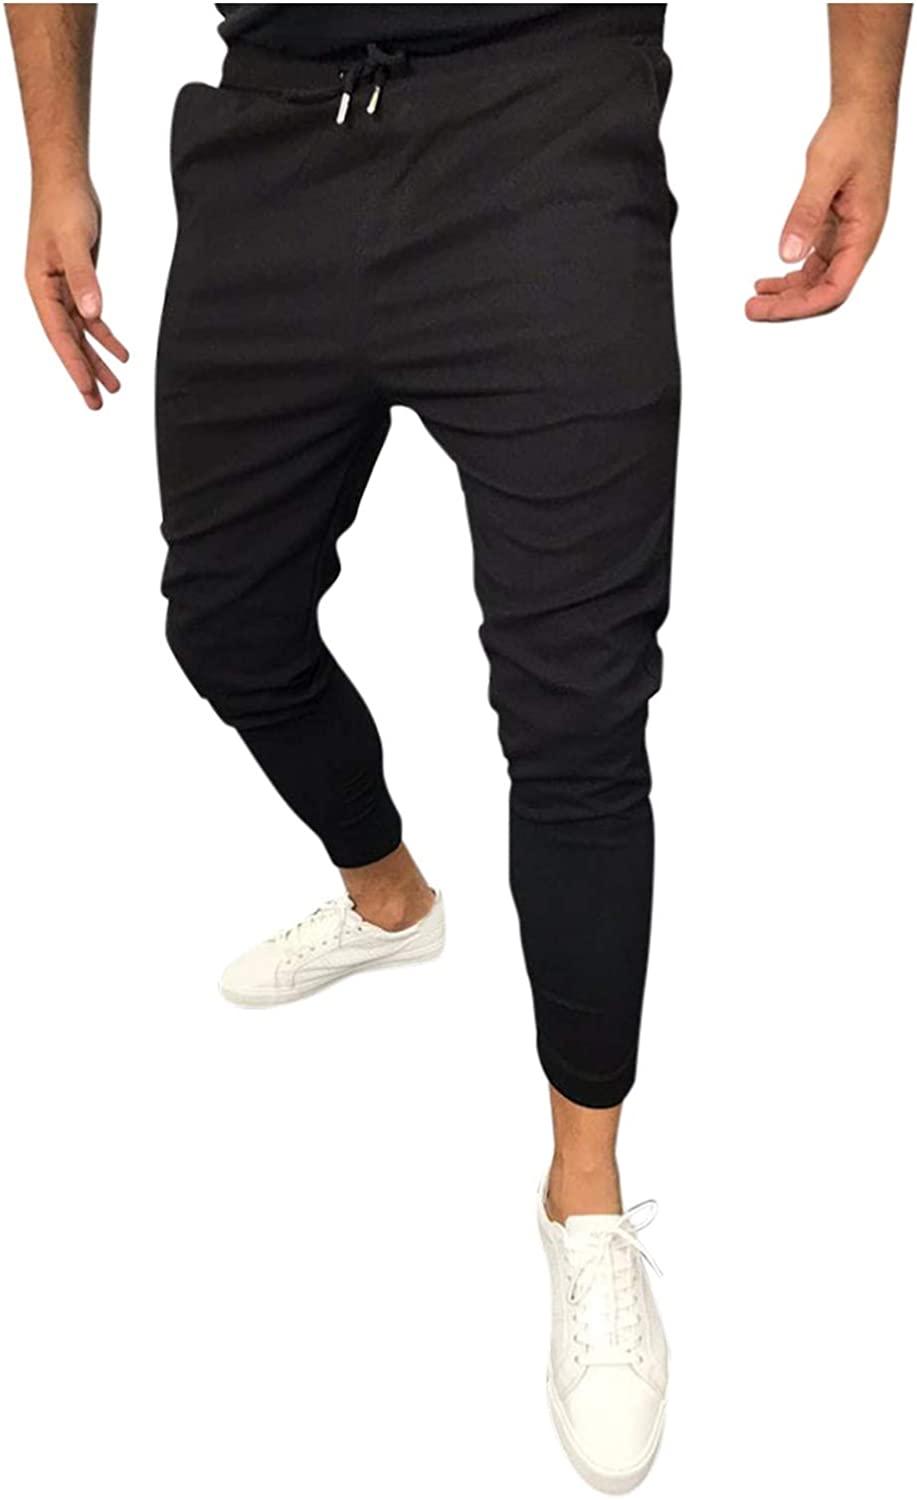 PHSHY Jogger Sport Pants for Men Casual Drawstring Slim Fit Straight Leg Pencil Gym Workout Sweatpants with Pockets